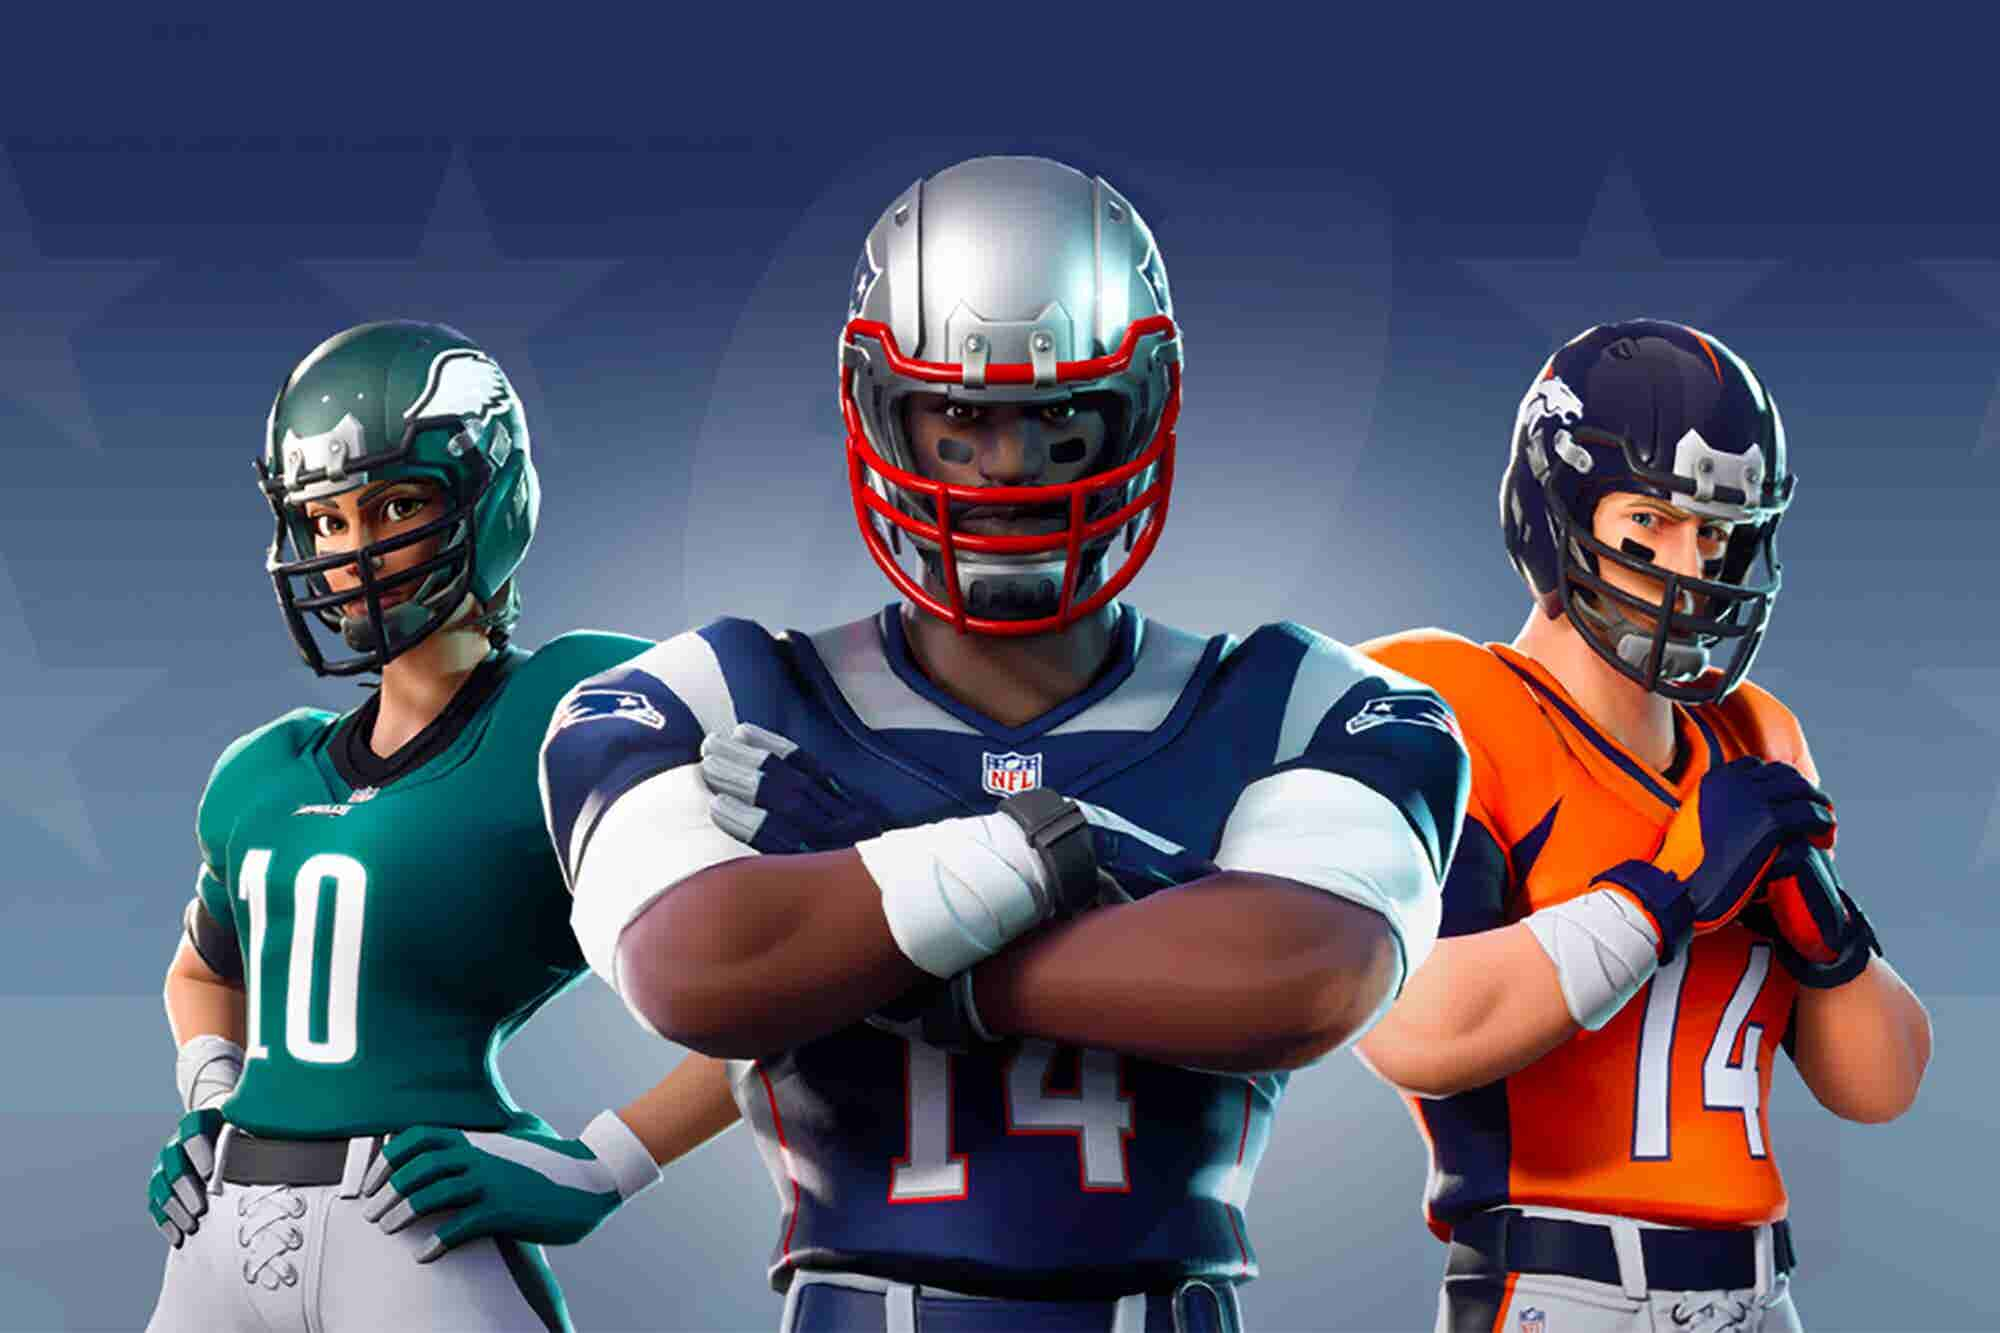 NFL Teams Up With Epic Games to Bring All 32 Team Uniforms to 'Fortnit...